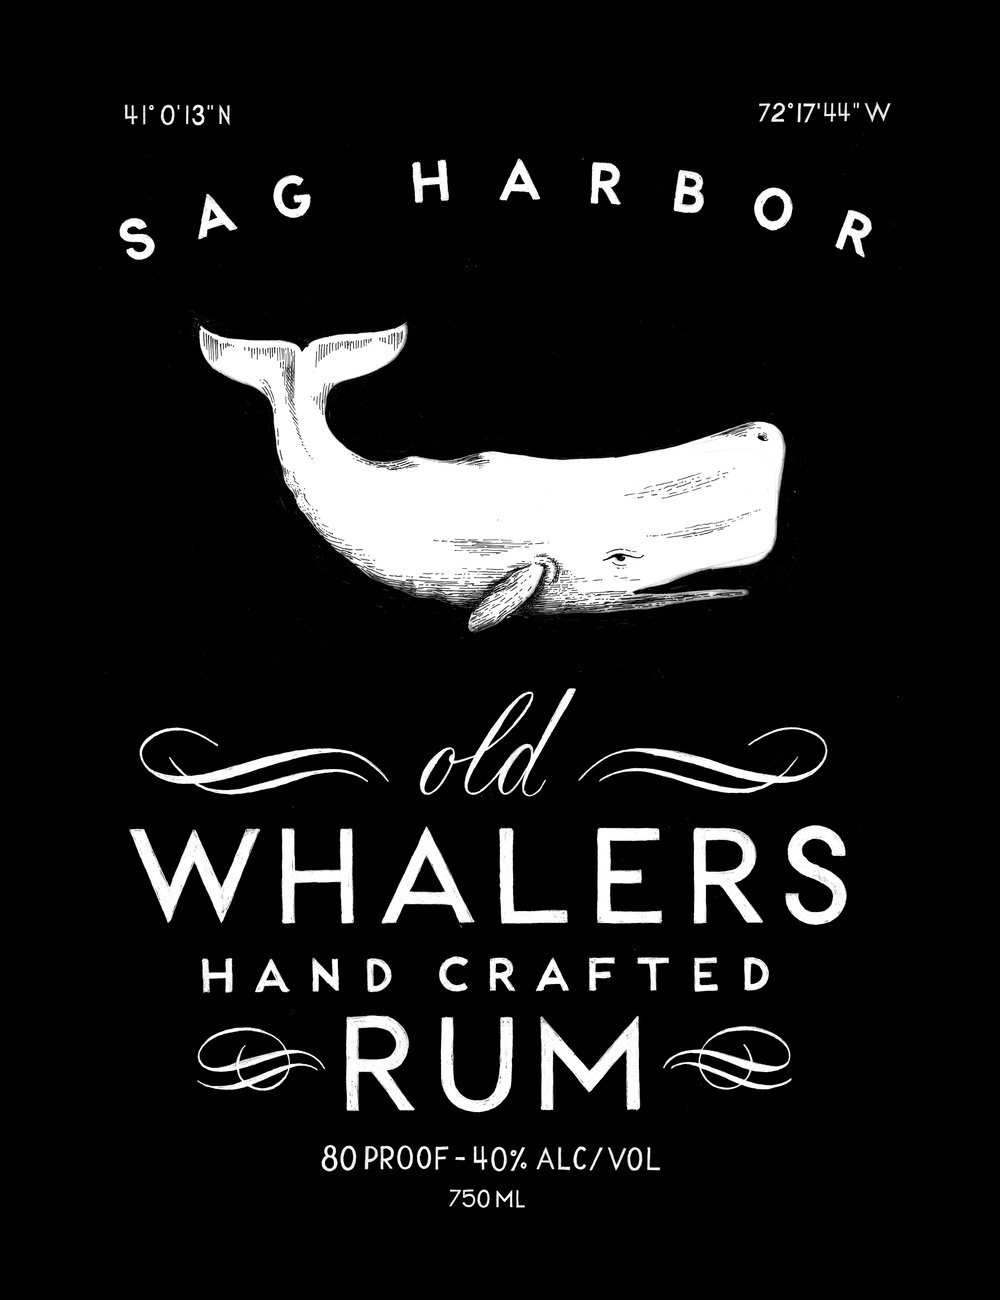 OldWhalersRum-Label.jpg